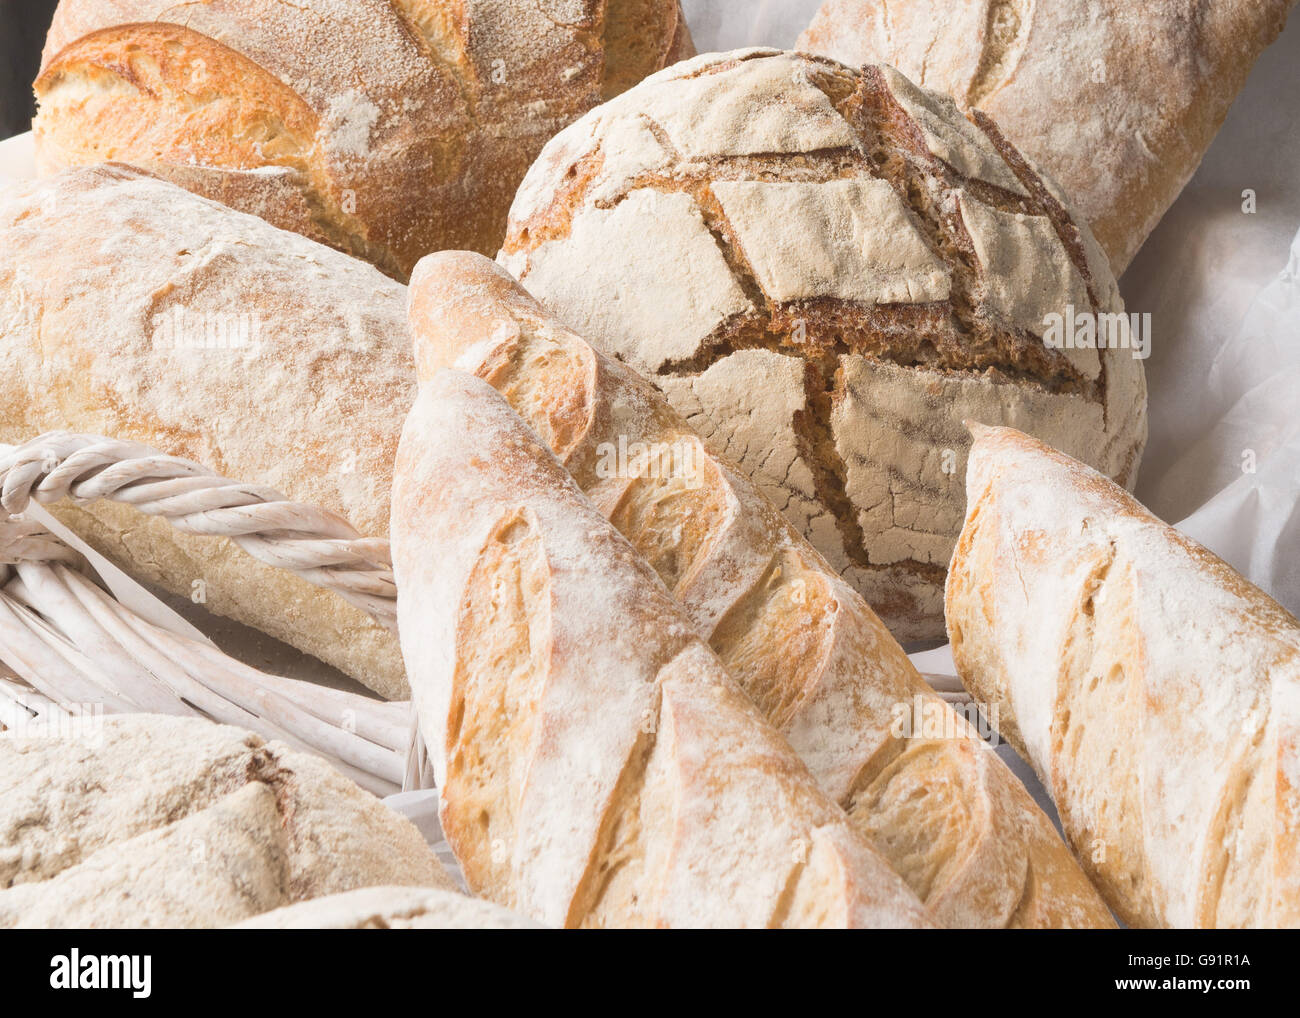 freshly baked artisan loaves of bread in white wicker basket - close up - Stock Image